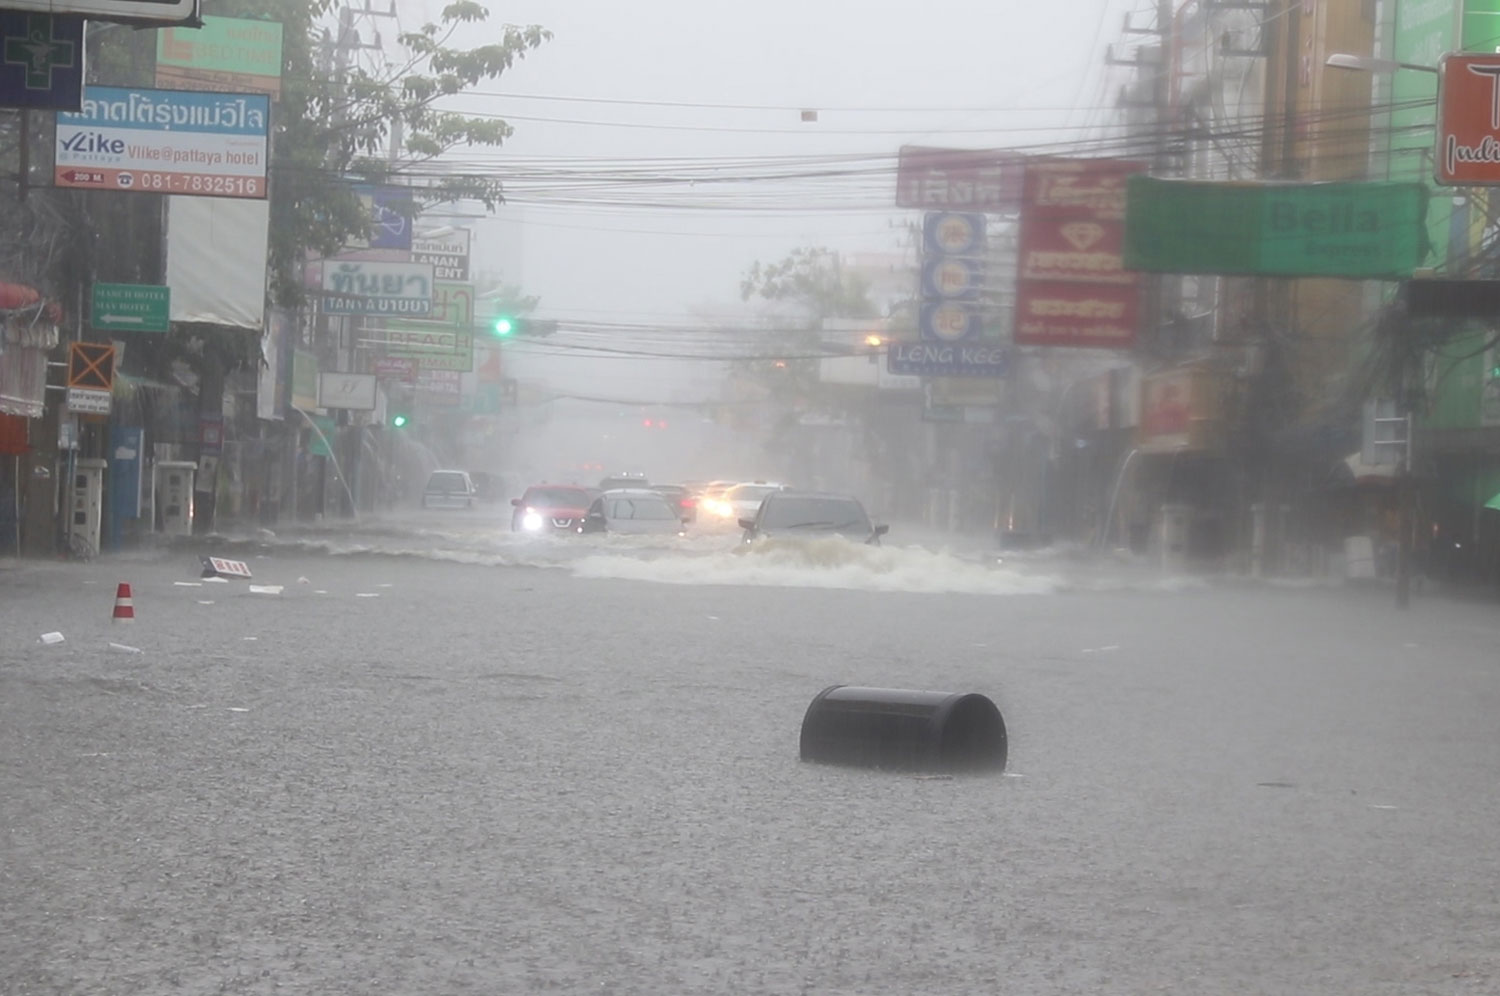 Pattaya town is flooded as heavy rain pounds the beach city and other areas of Bang Lamung district, Chon Buri, on Friday. (Photo: Chaiyut Pupattanapong)